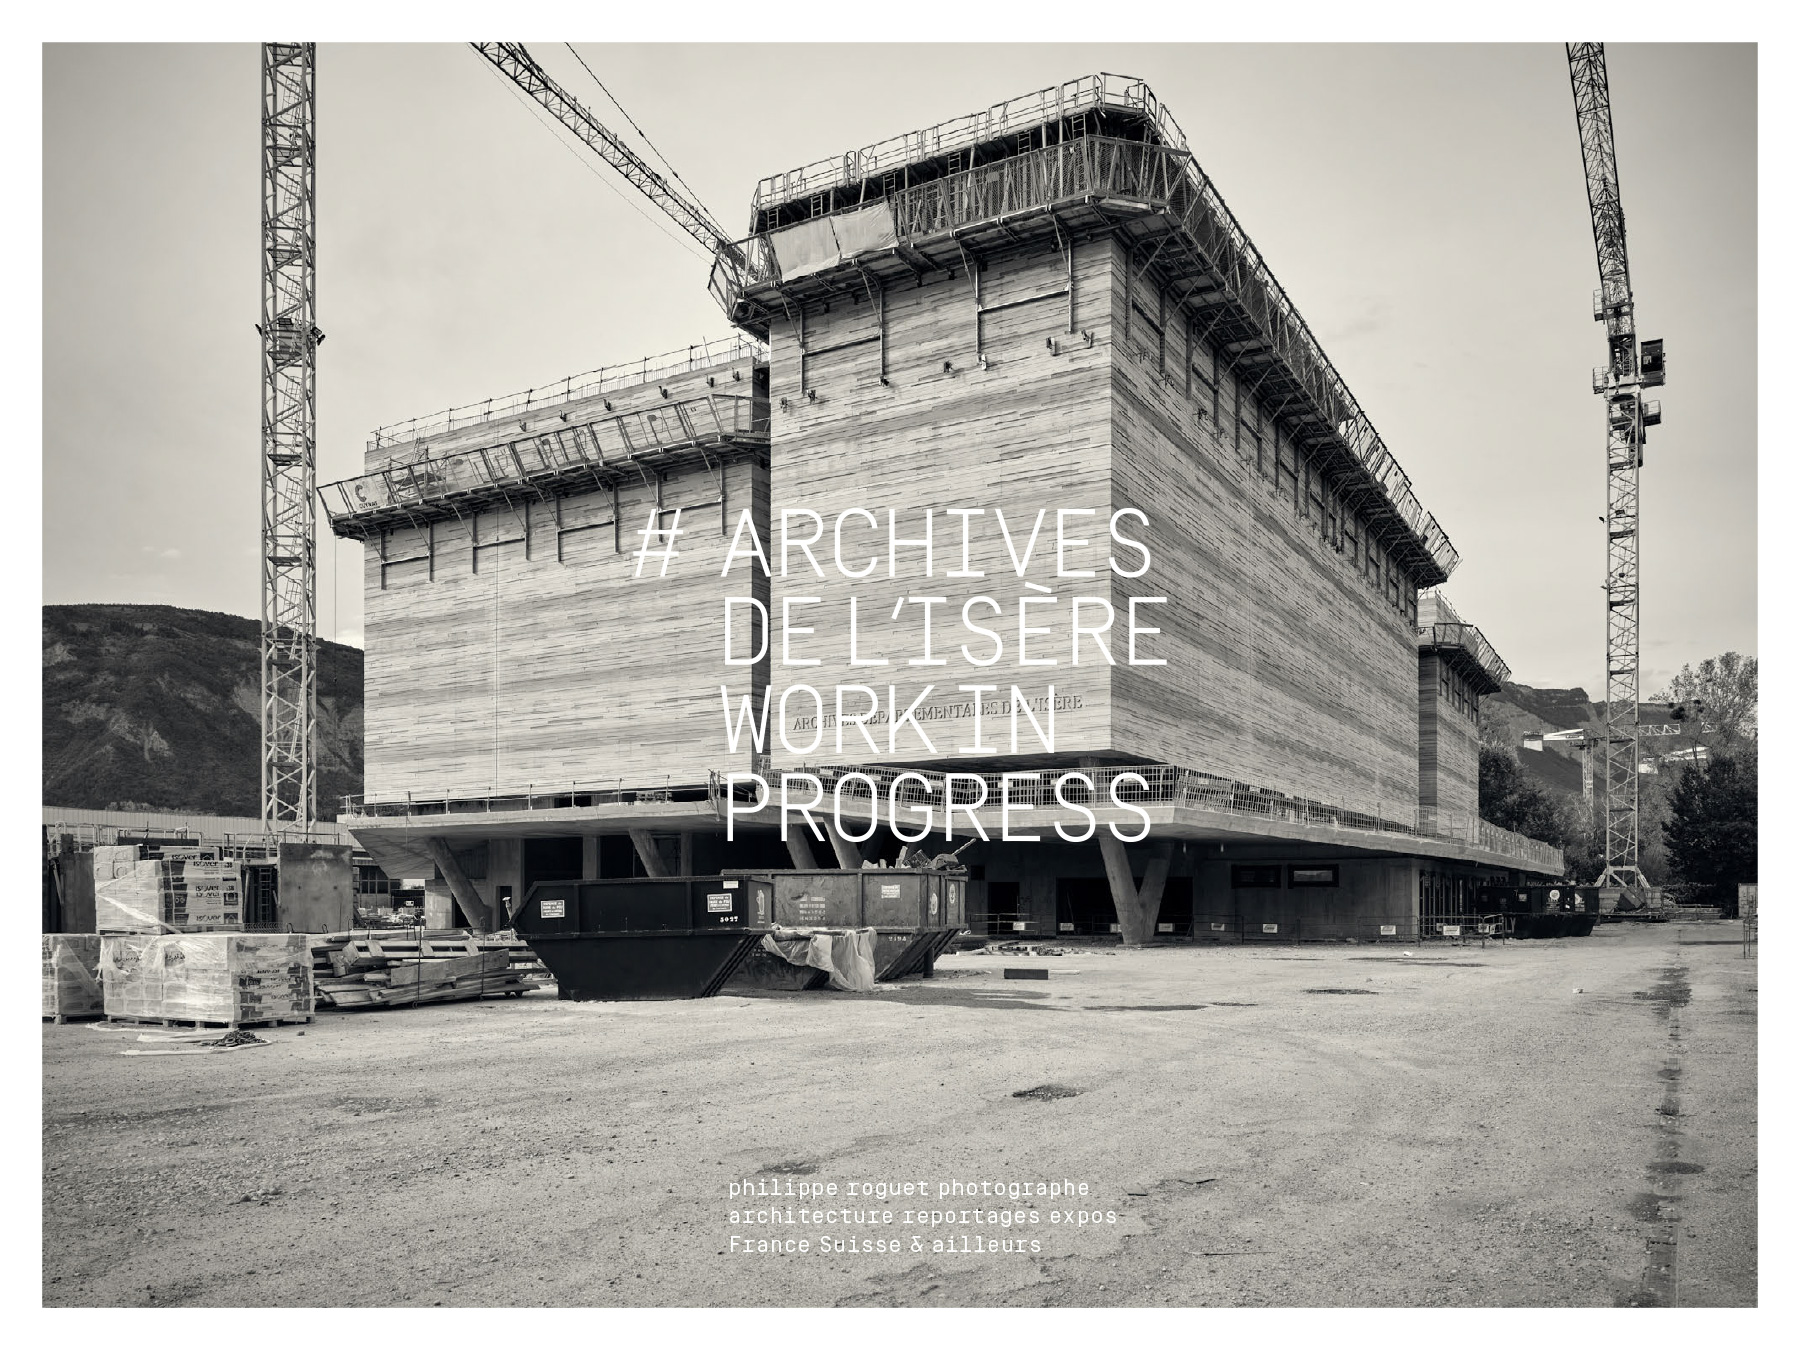 Archives de l'Isère-D3 architectes – CR&ON Architectes